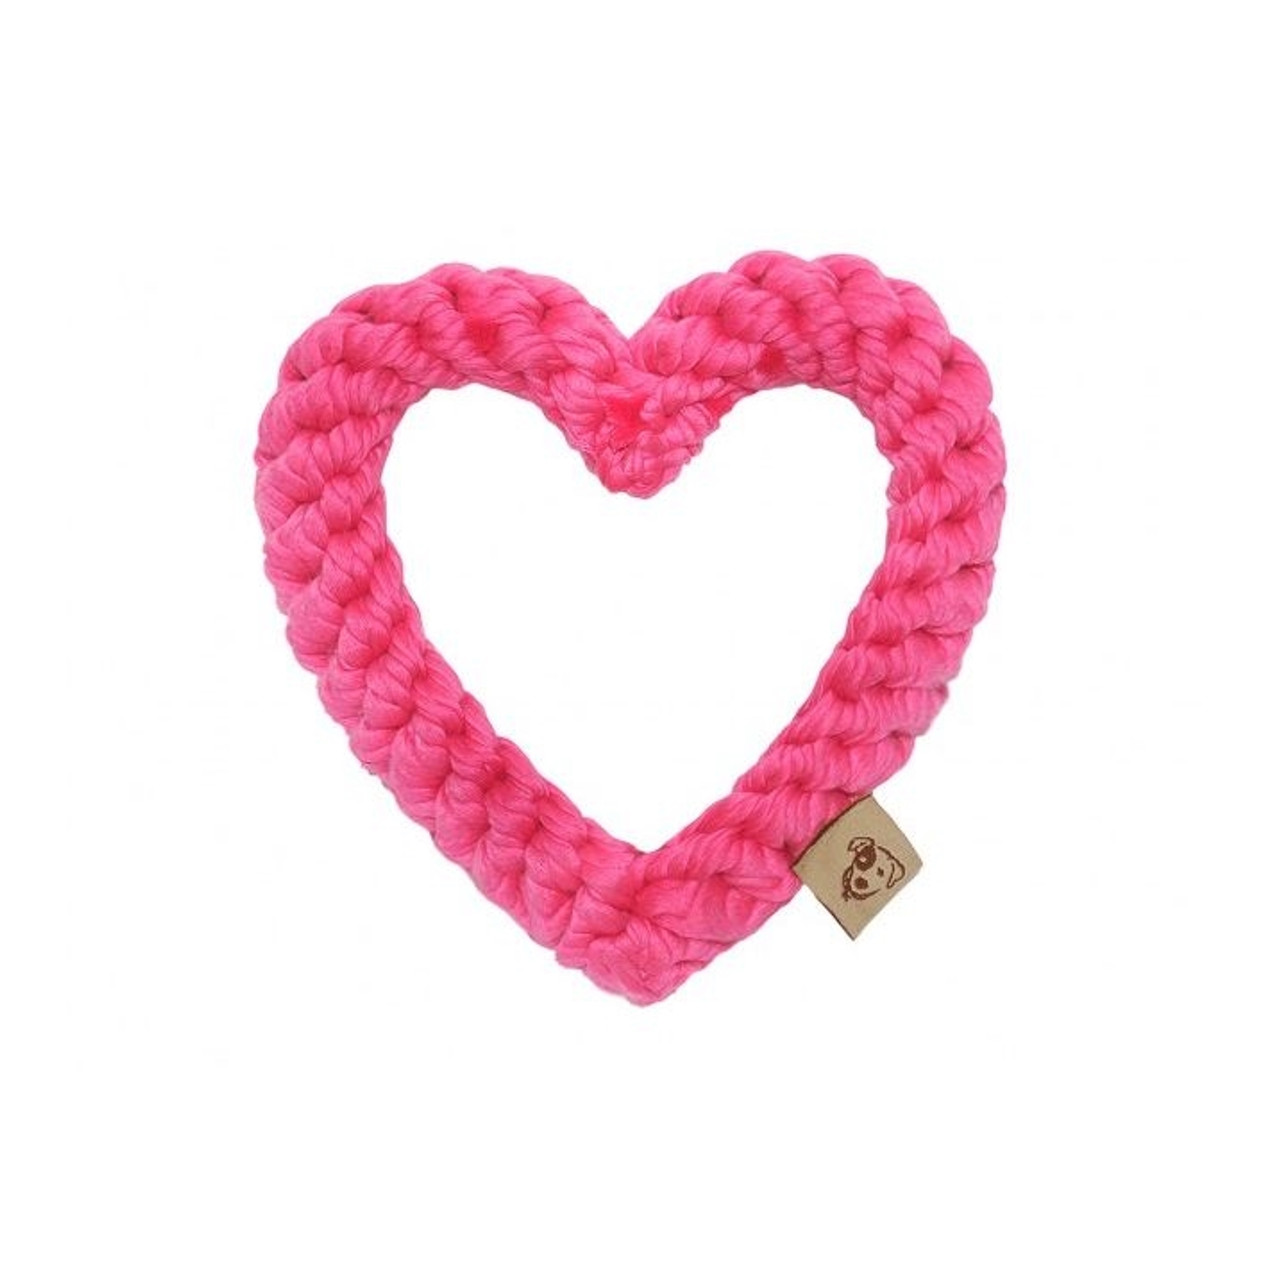 Eco Friendly Dog Rope Toy - Rope Pink Heart